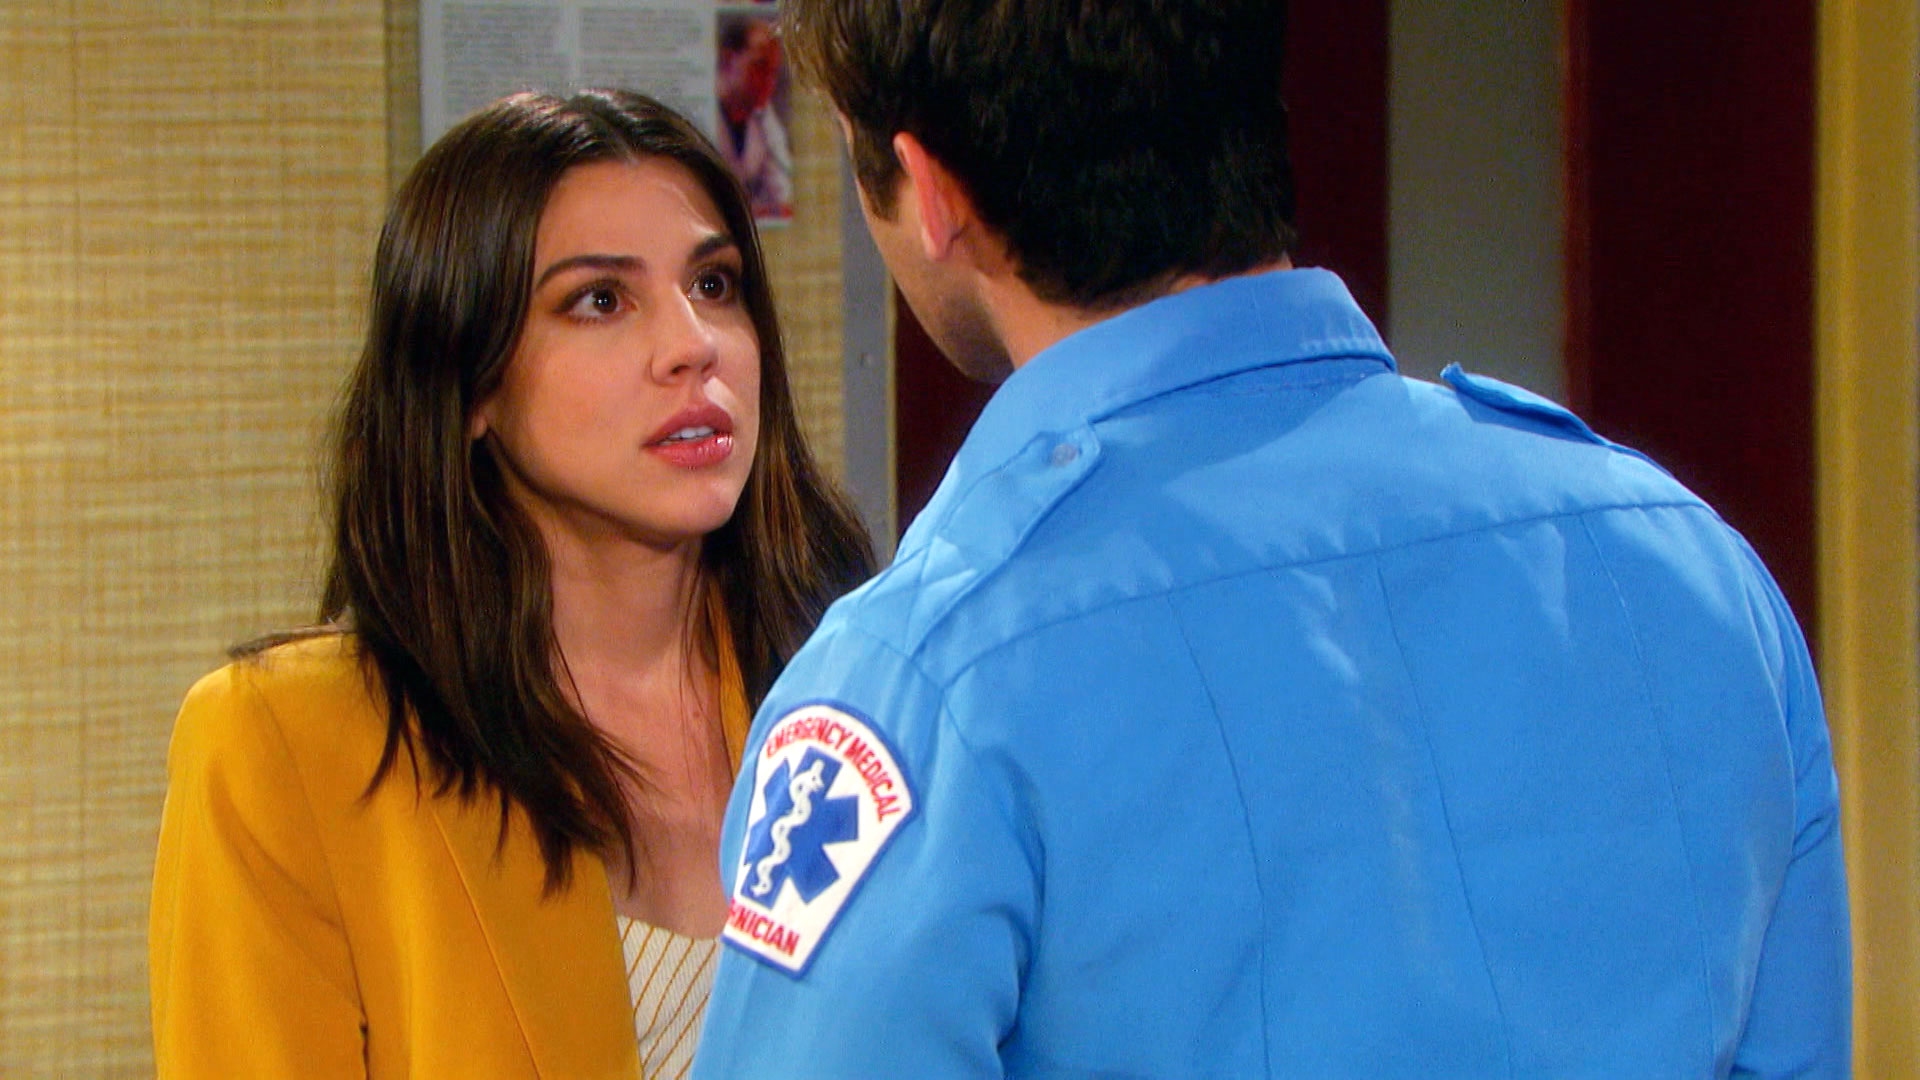 Days of Our Lives Season 55 Episode 87